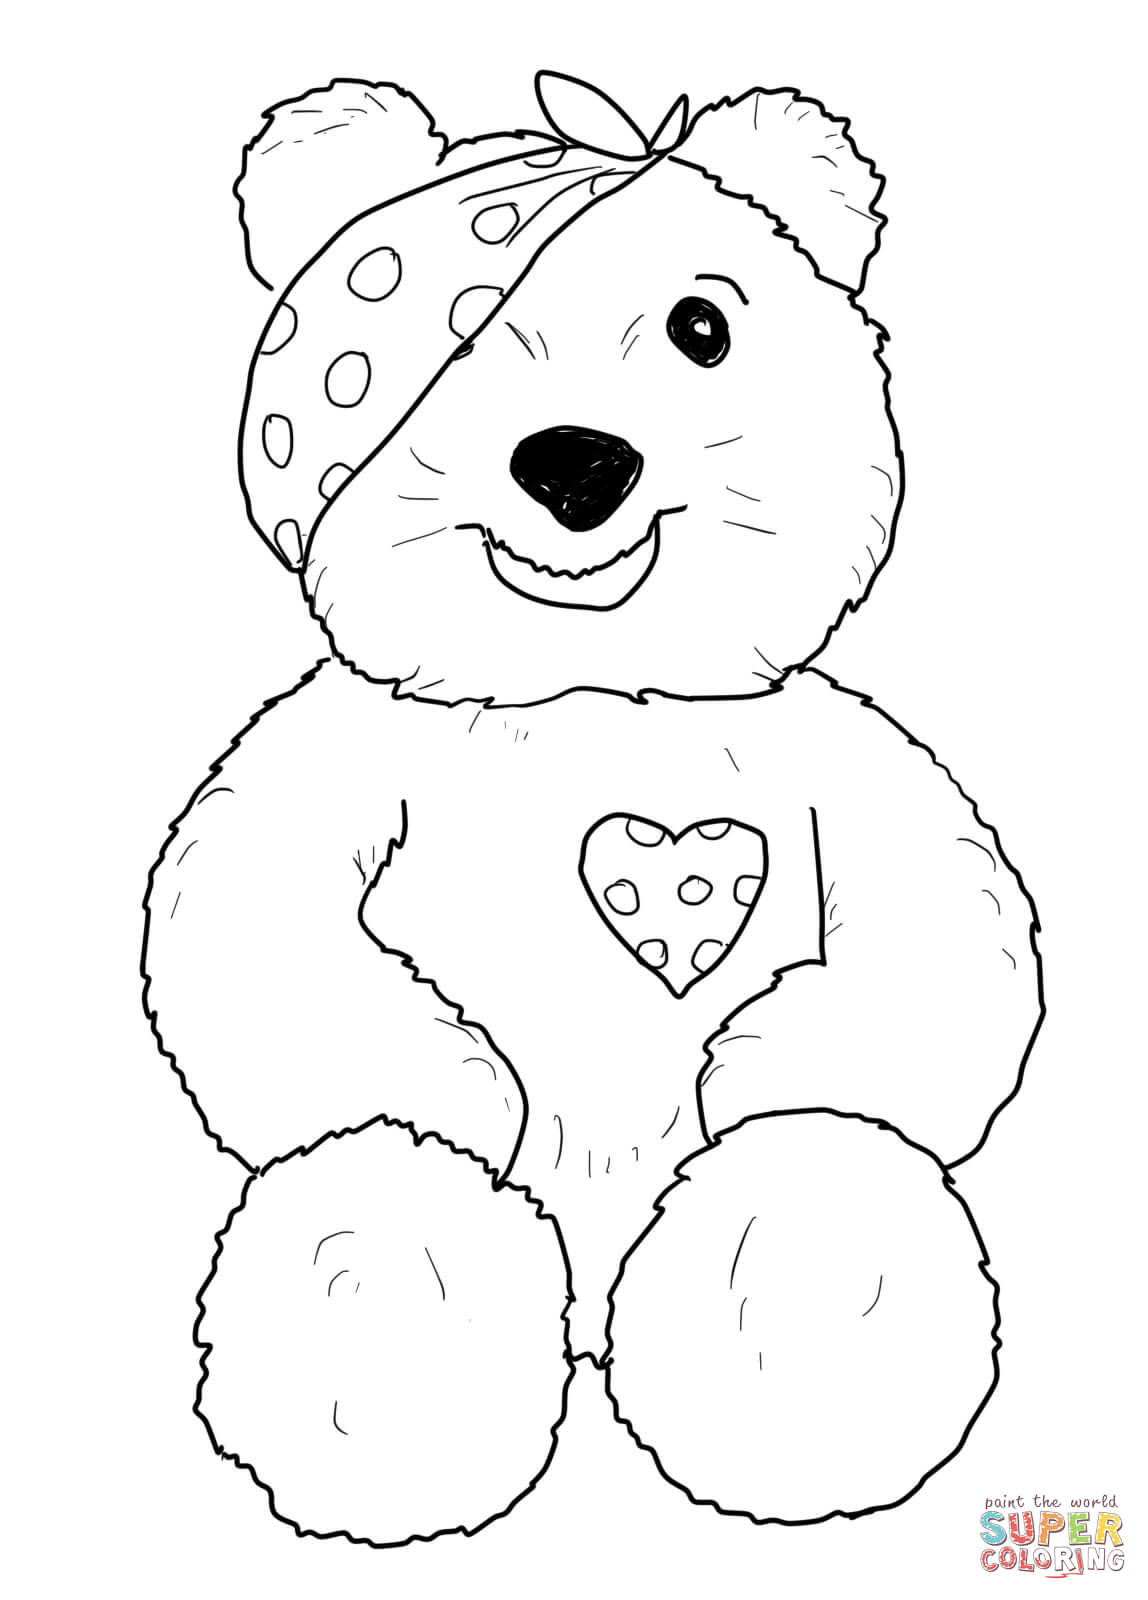 pudsey bear printables pudsey bear colouring template bear coloring pages printables pudsey bear